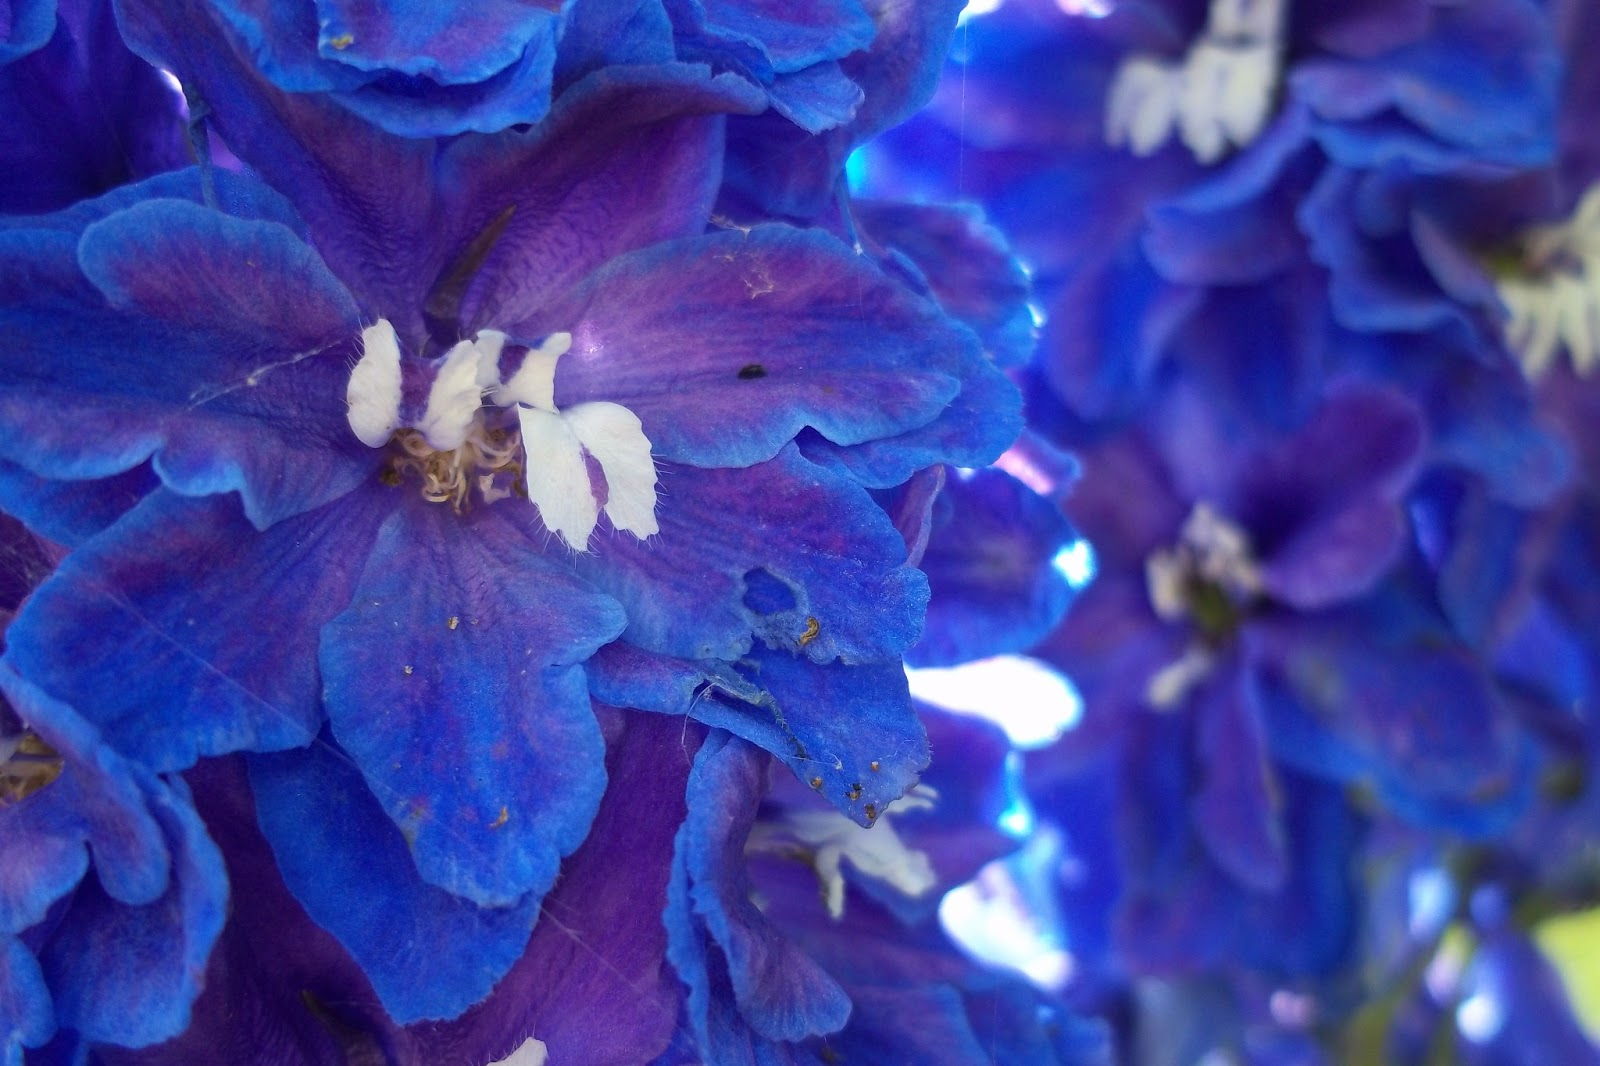 List of blue flowers names 16 background hdflowerwallpaper list of blue flowers names widescreen wallpaper izmirmasajfo Gallery